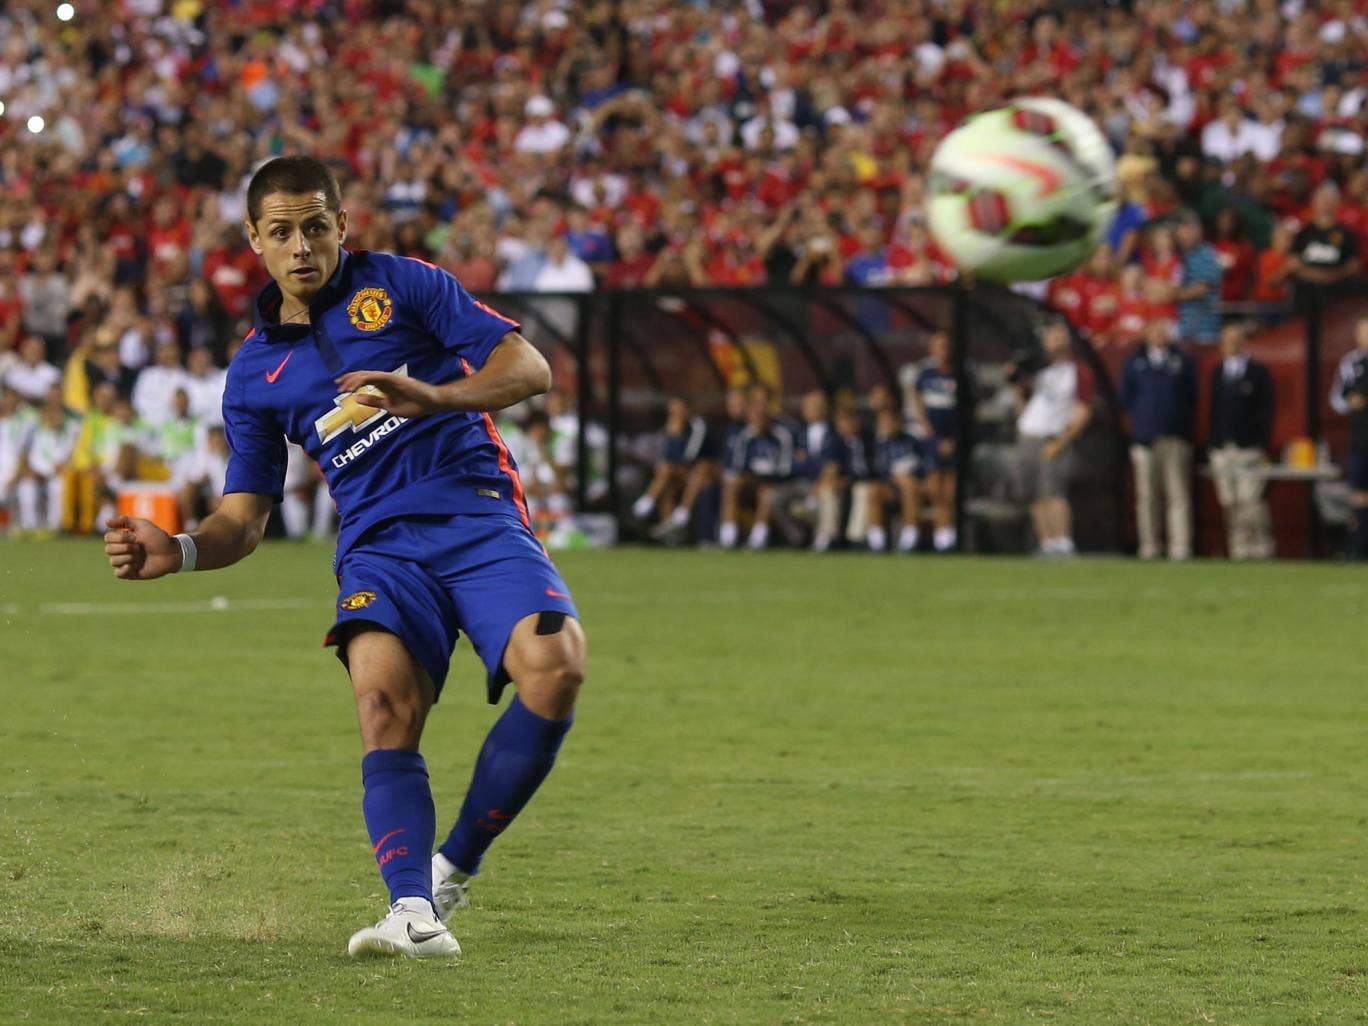 Javier Hernandez in action for Manchester United during pre-season